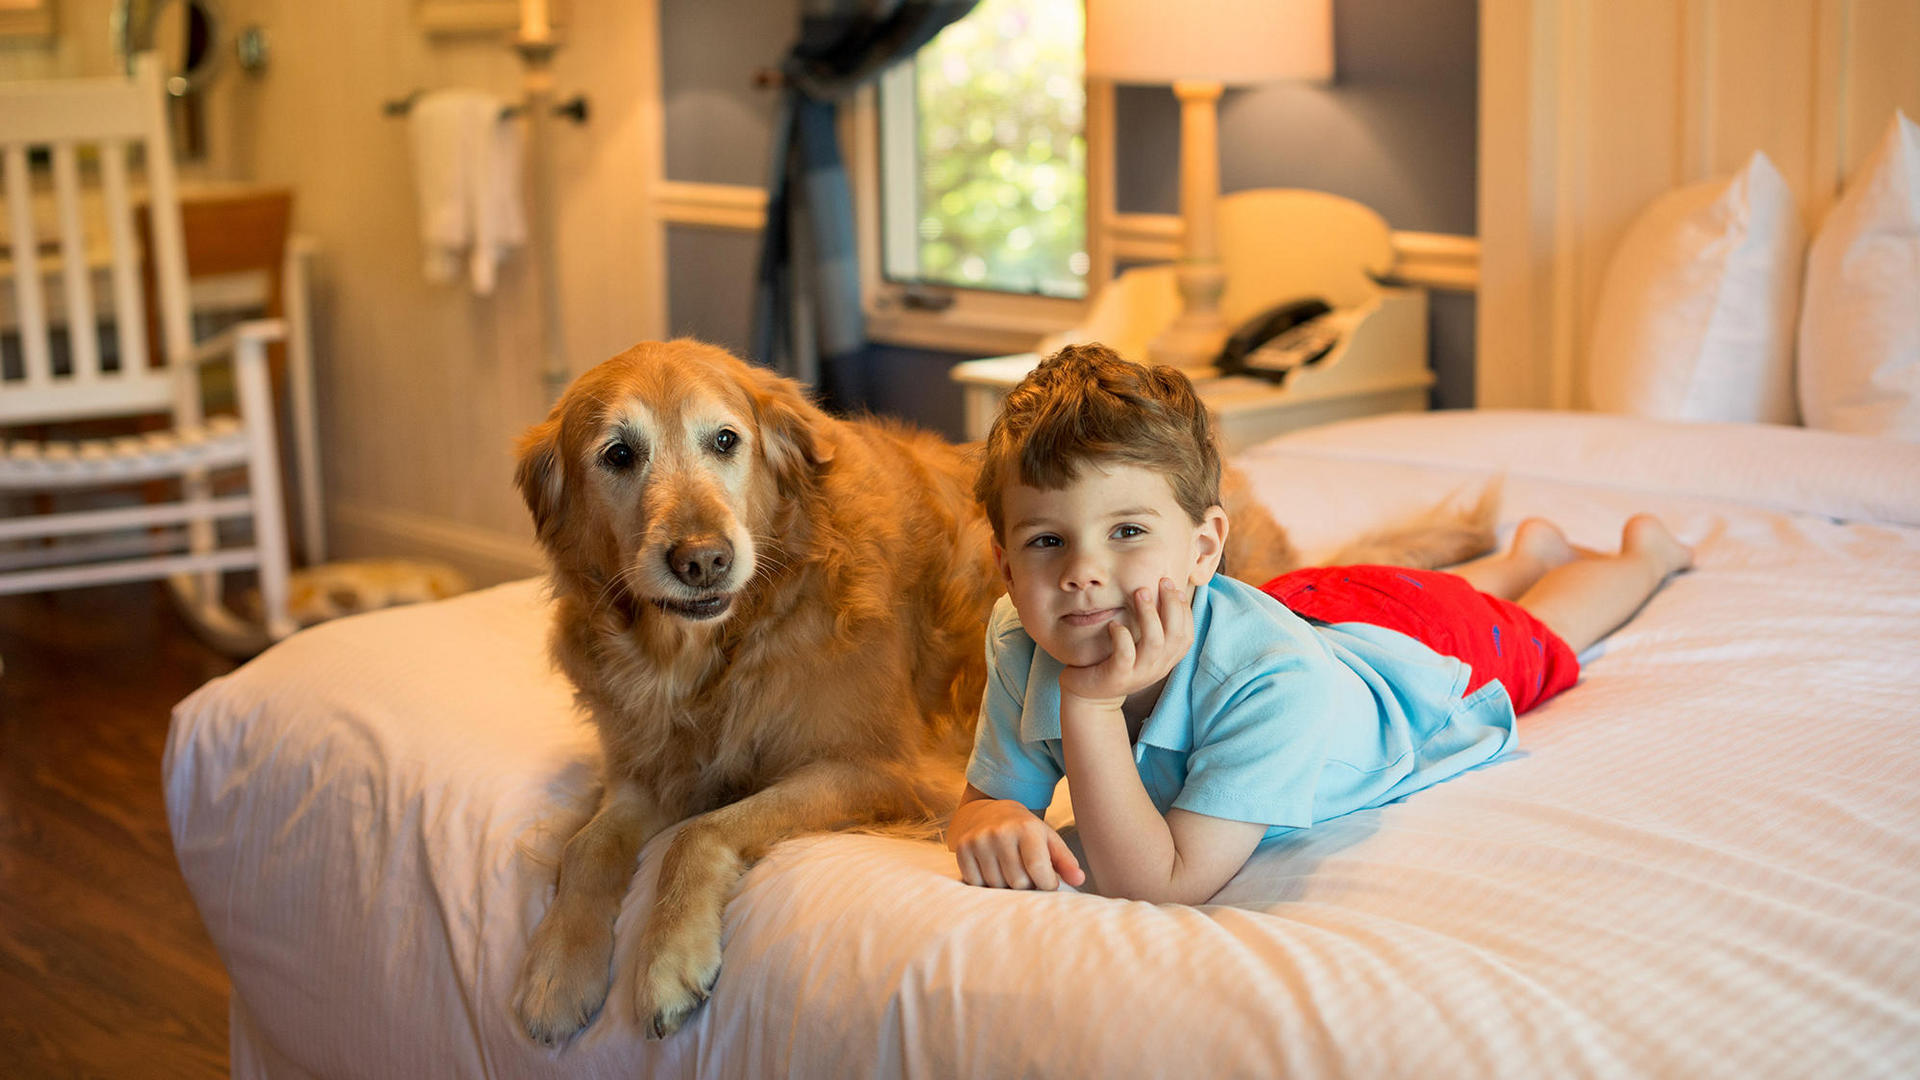 Dog & Child Laying on Bed